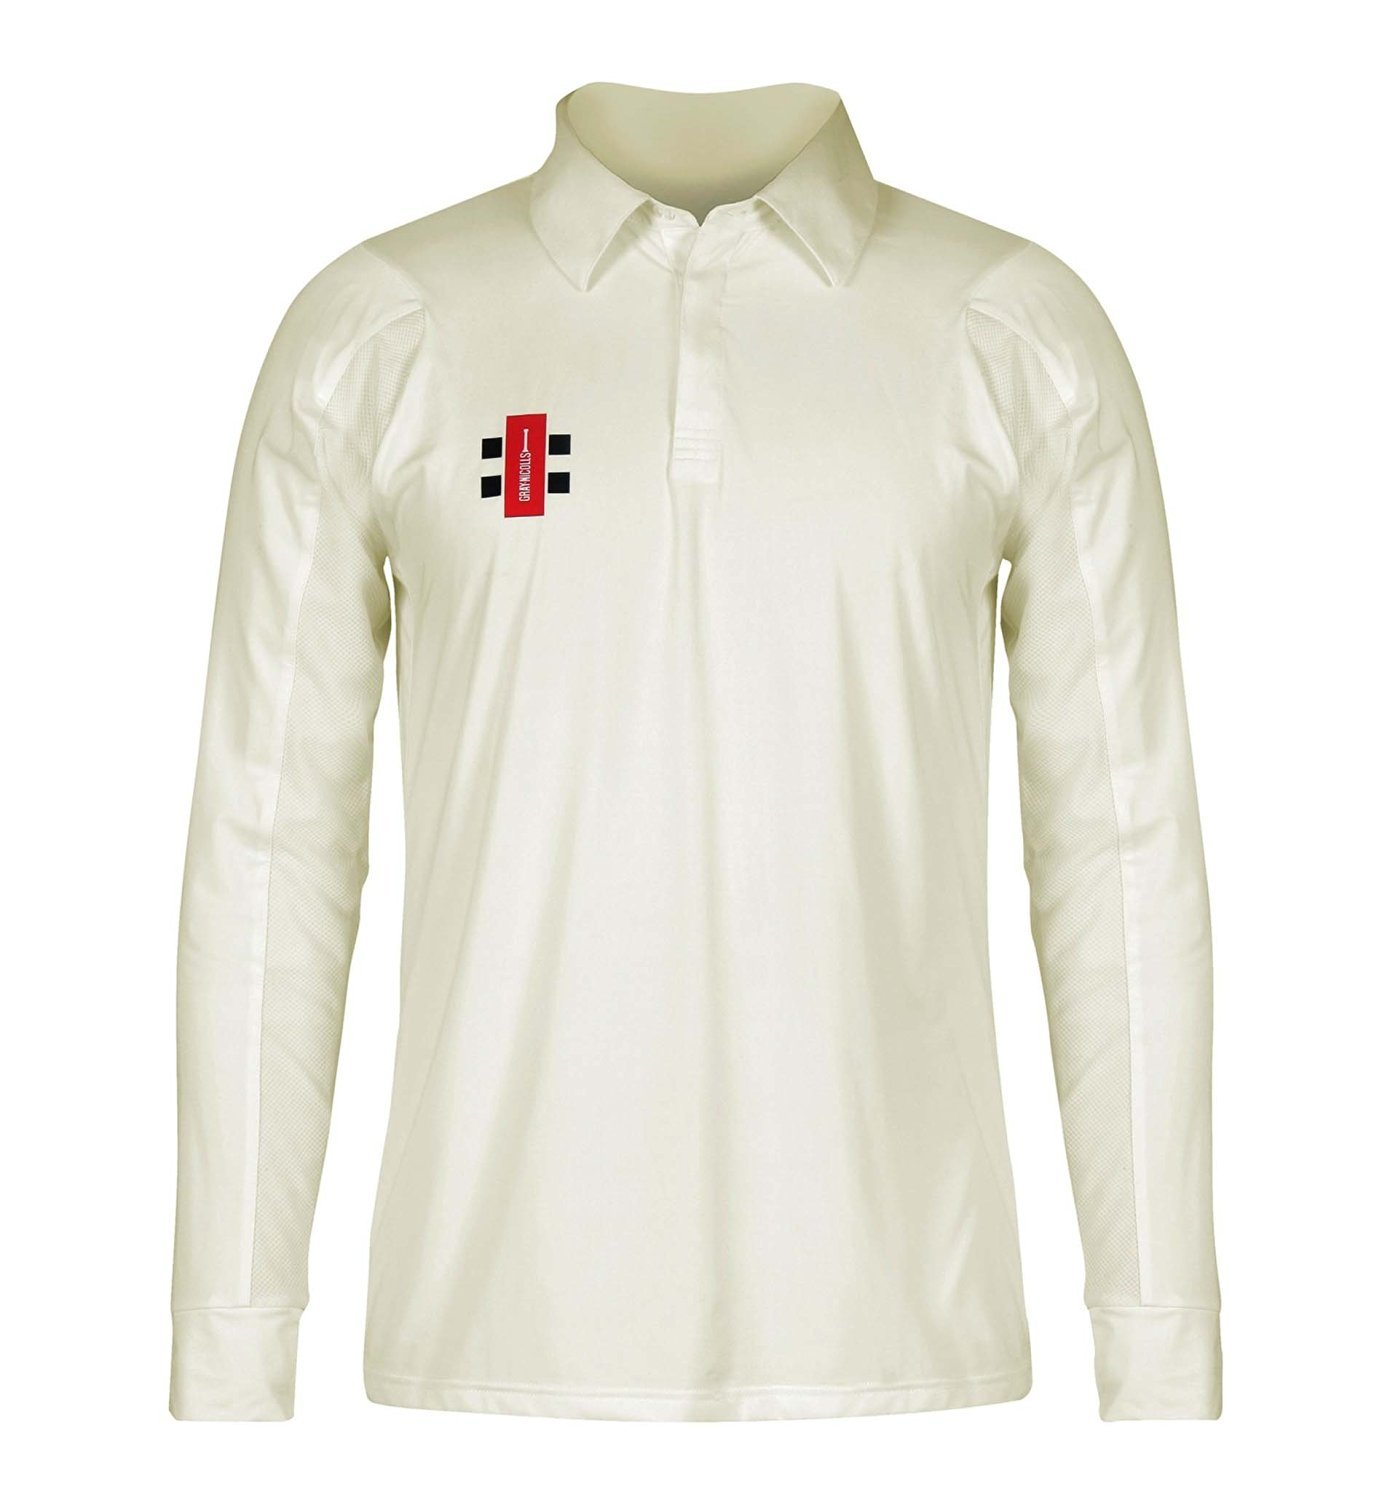 Cricket t shirt white - Buy Gray Nicolls Long Sleeve Cricket Shirt Online At Low Prices In India Amazon In